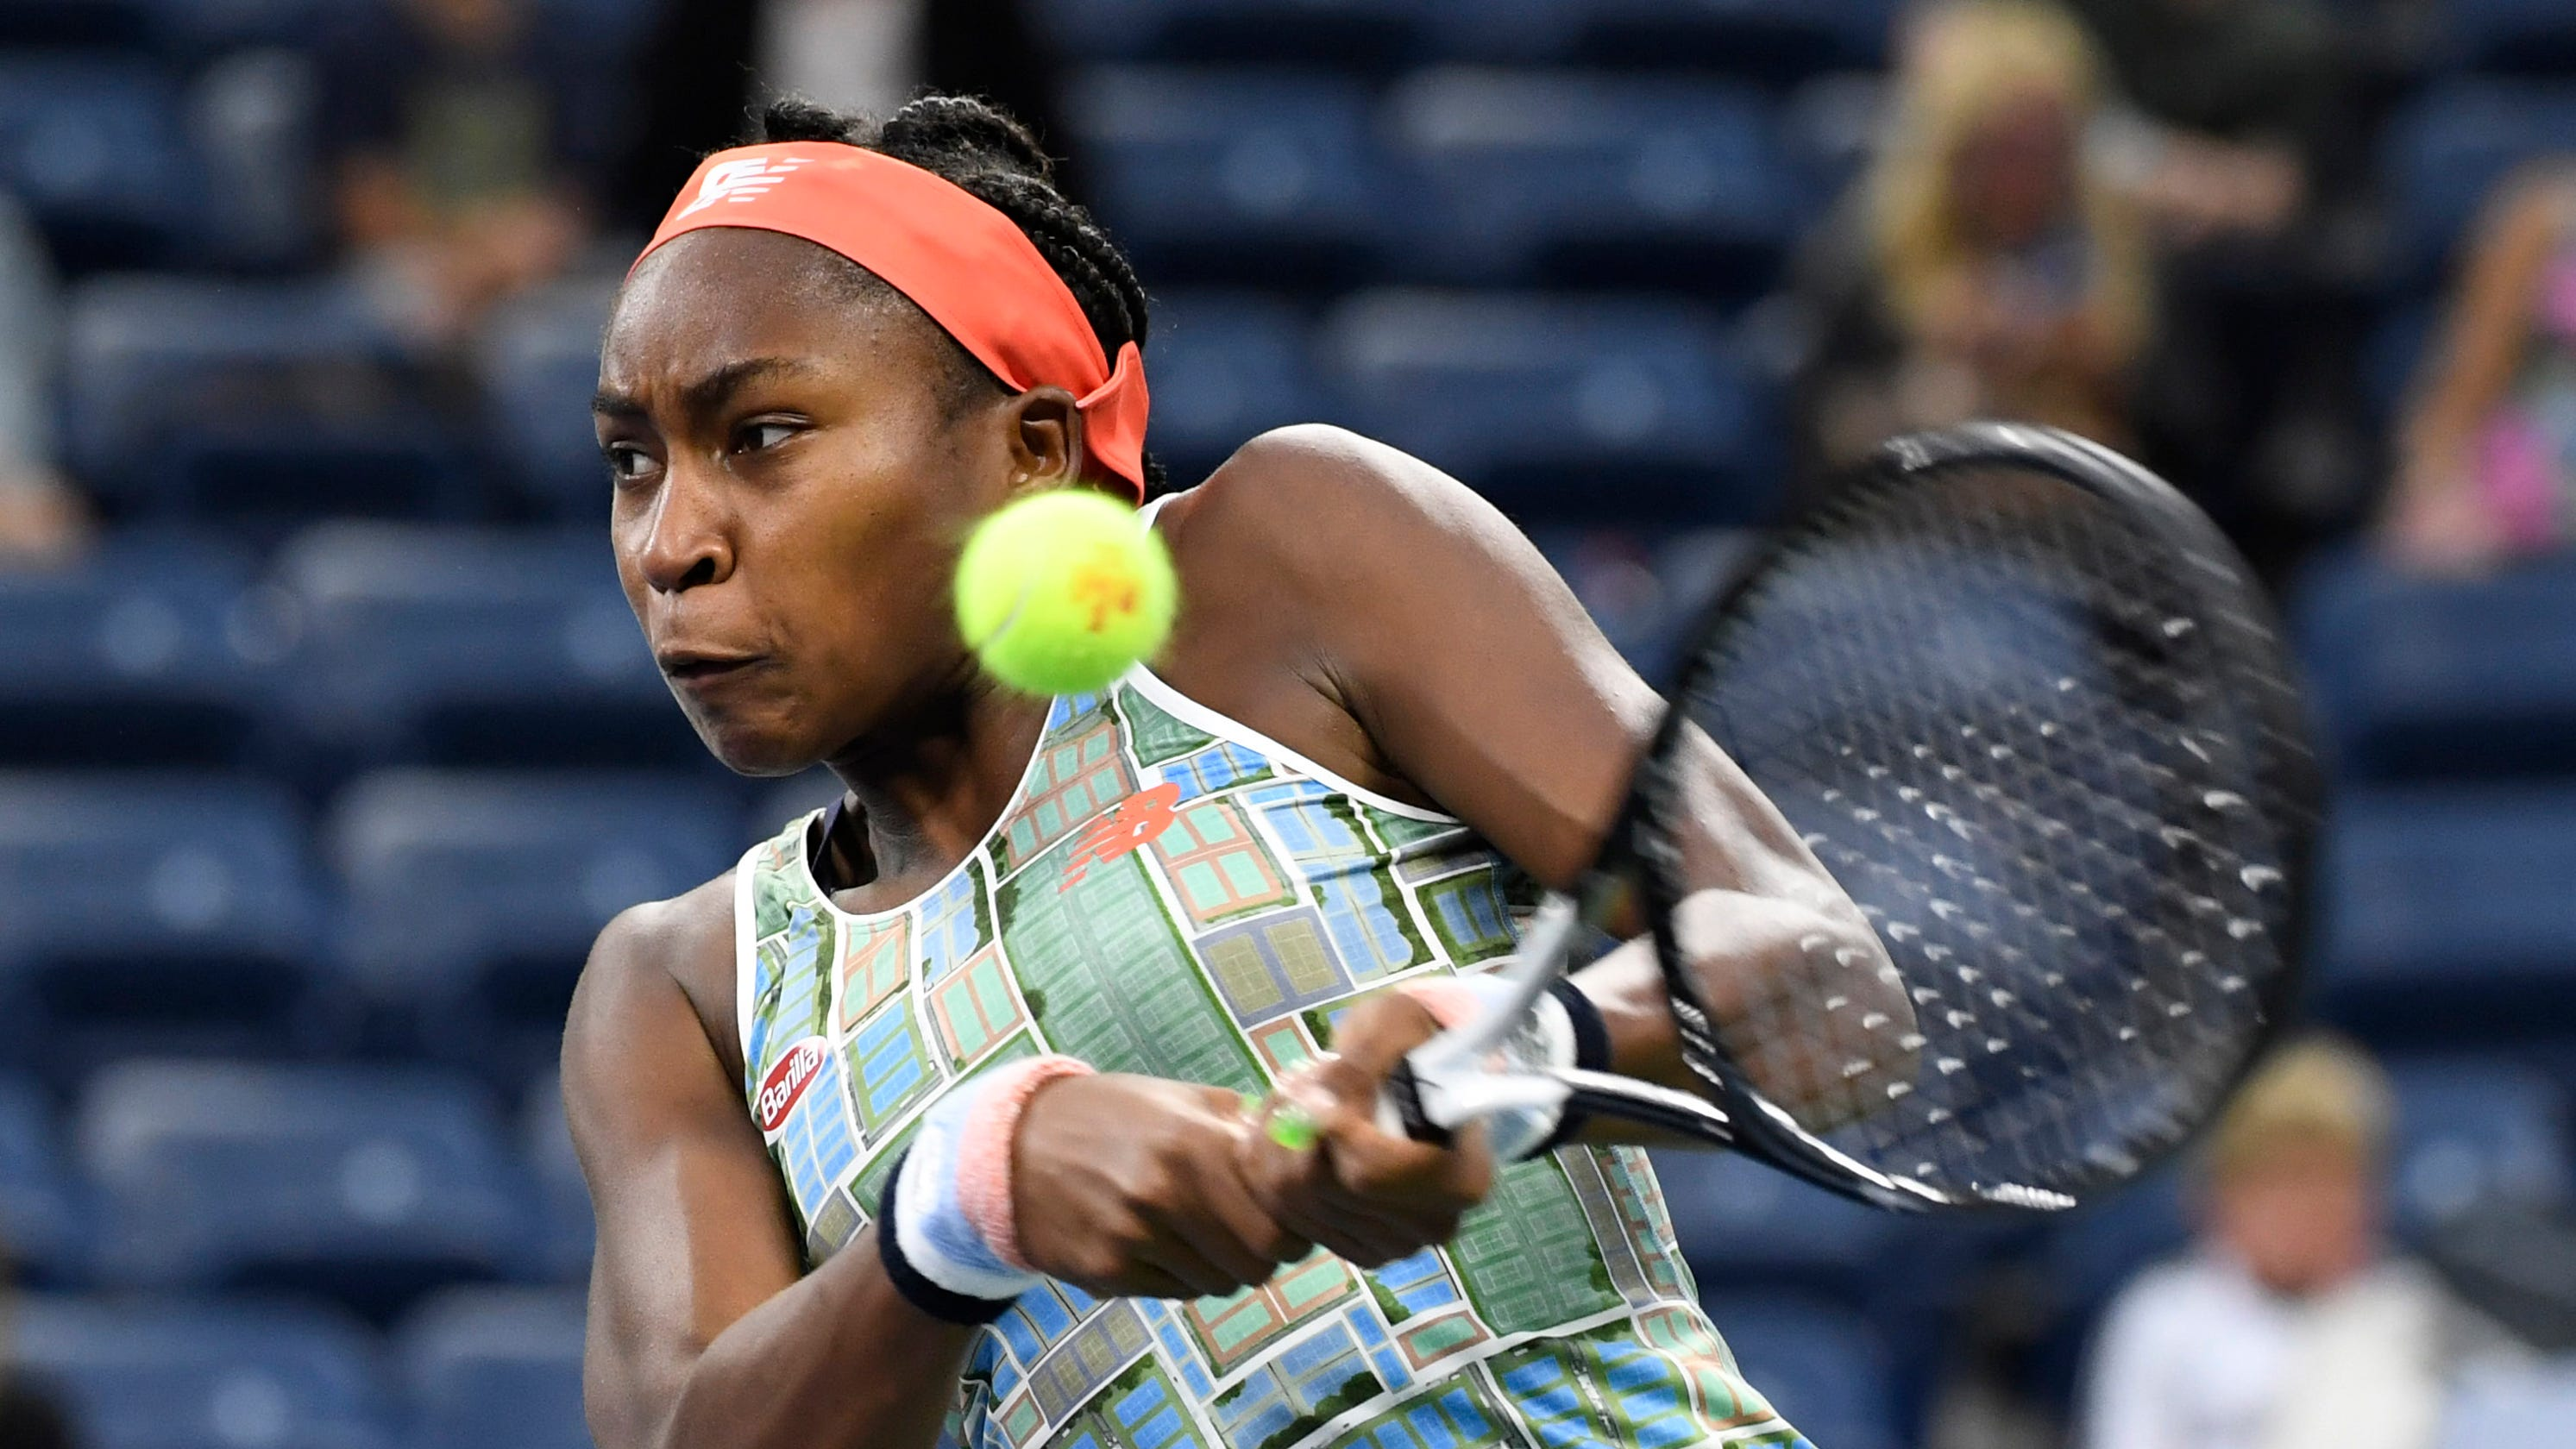 2019 US Open: Coco Gauff outlasts Timea Babos to reach third